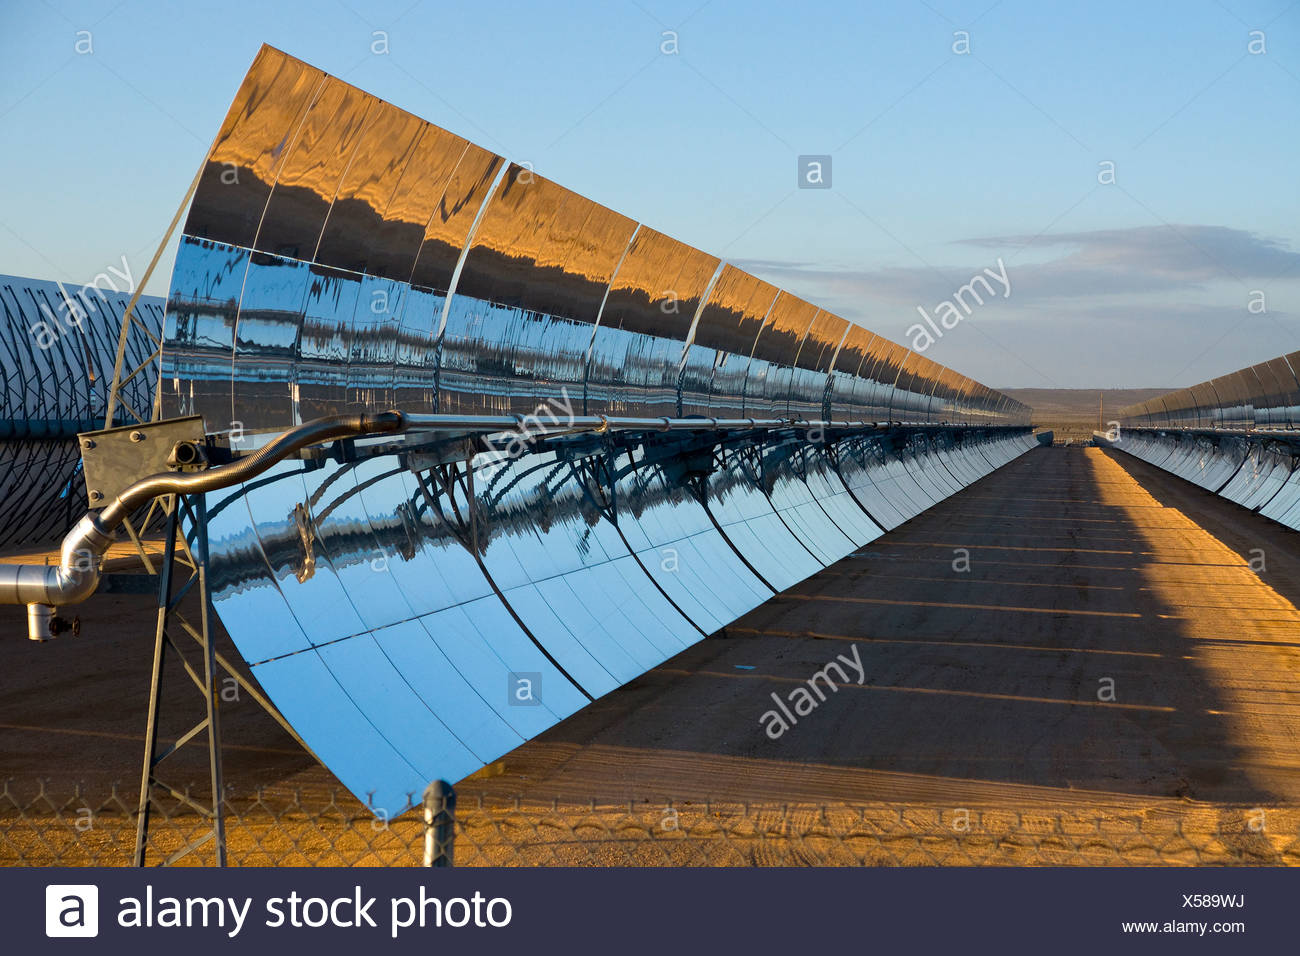 A solar power plant - Stock Image